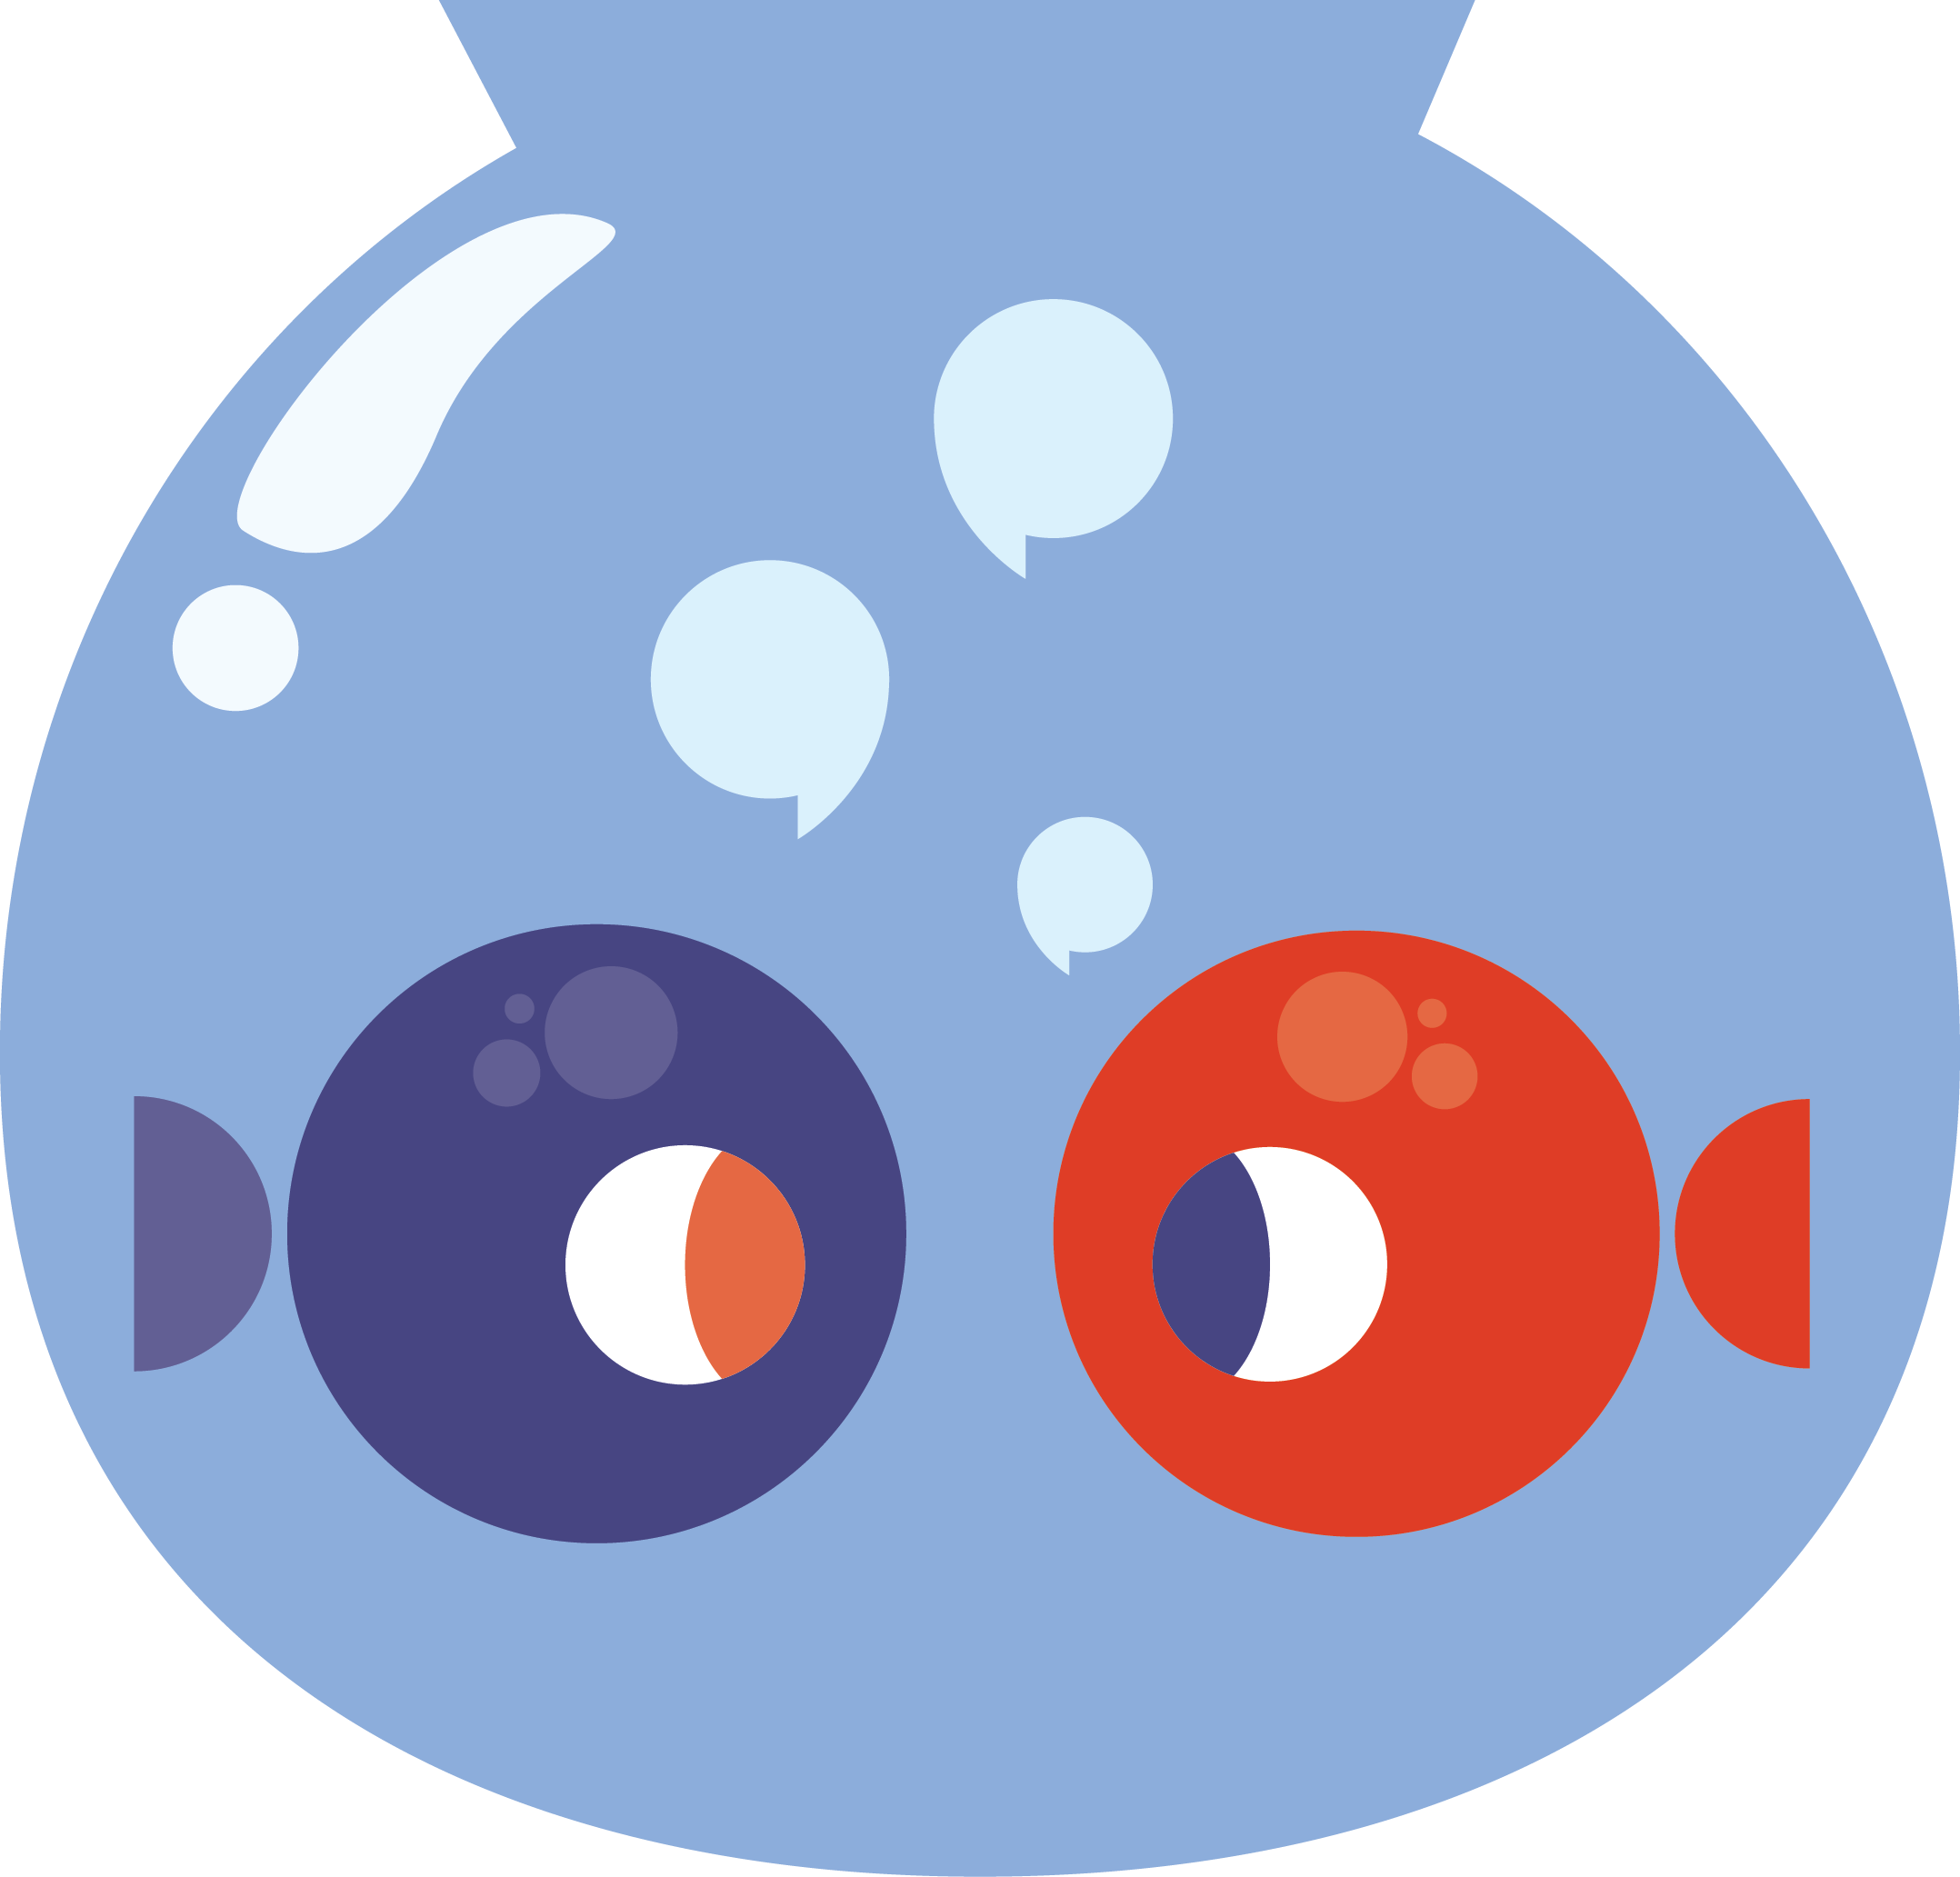 Fishbowl clipart transparent. Panel moderating discussion between